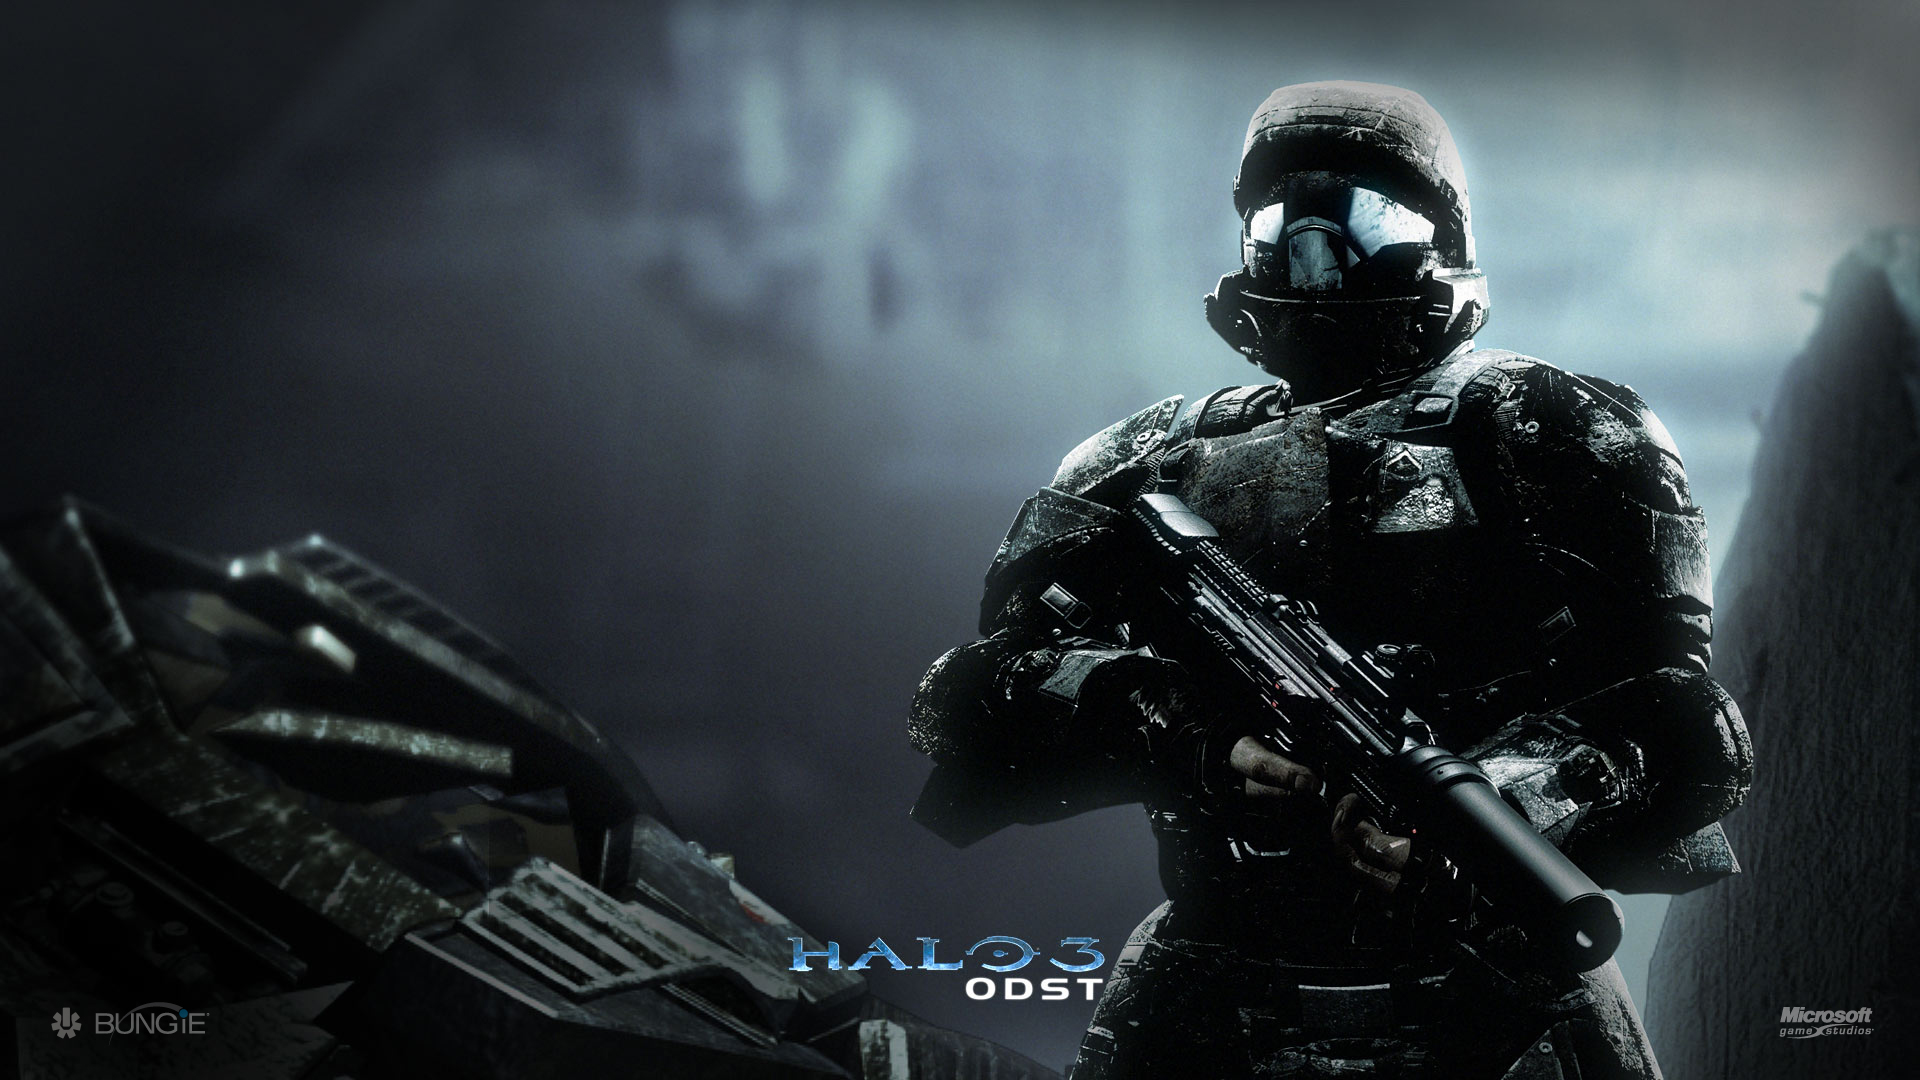 Halo Wallpaper HD free download | PixelsTalk.Net